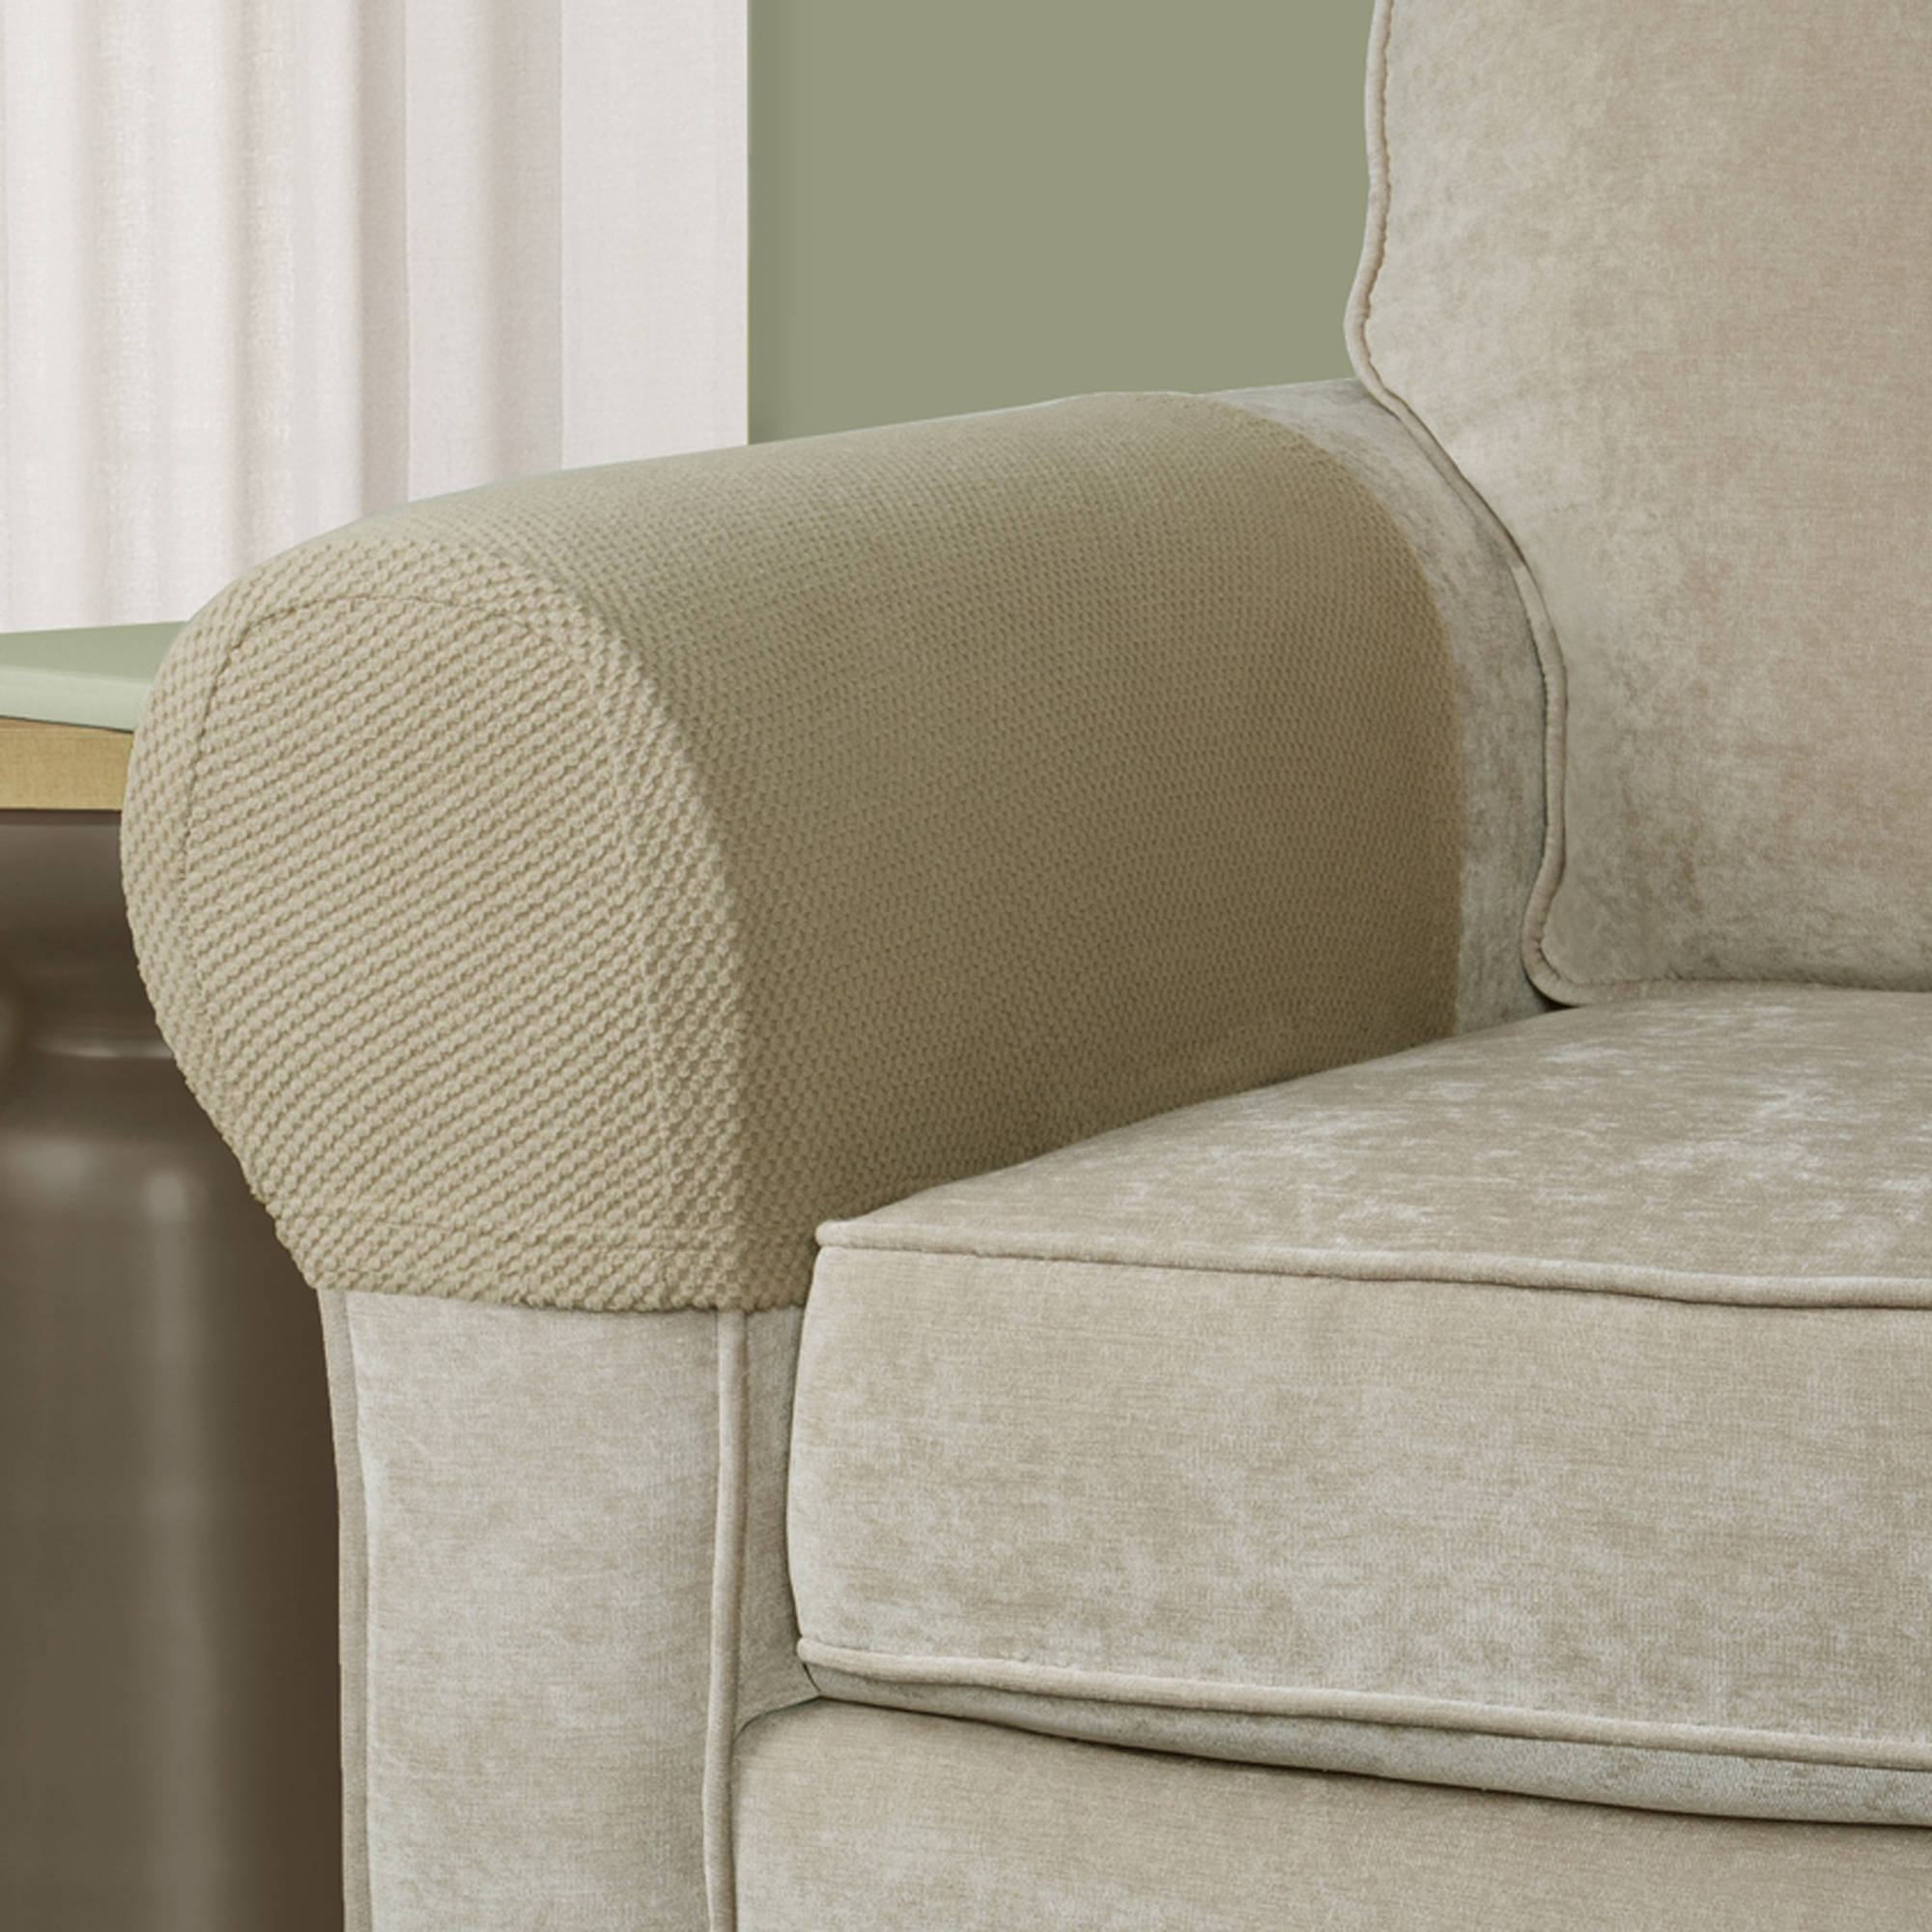 Mainstays Pixel Stretch Fabric Furniture Armrest Covers Walmart With Regard To Sofa And Chair Slipcovers (Image 6 of 15)